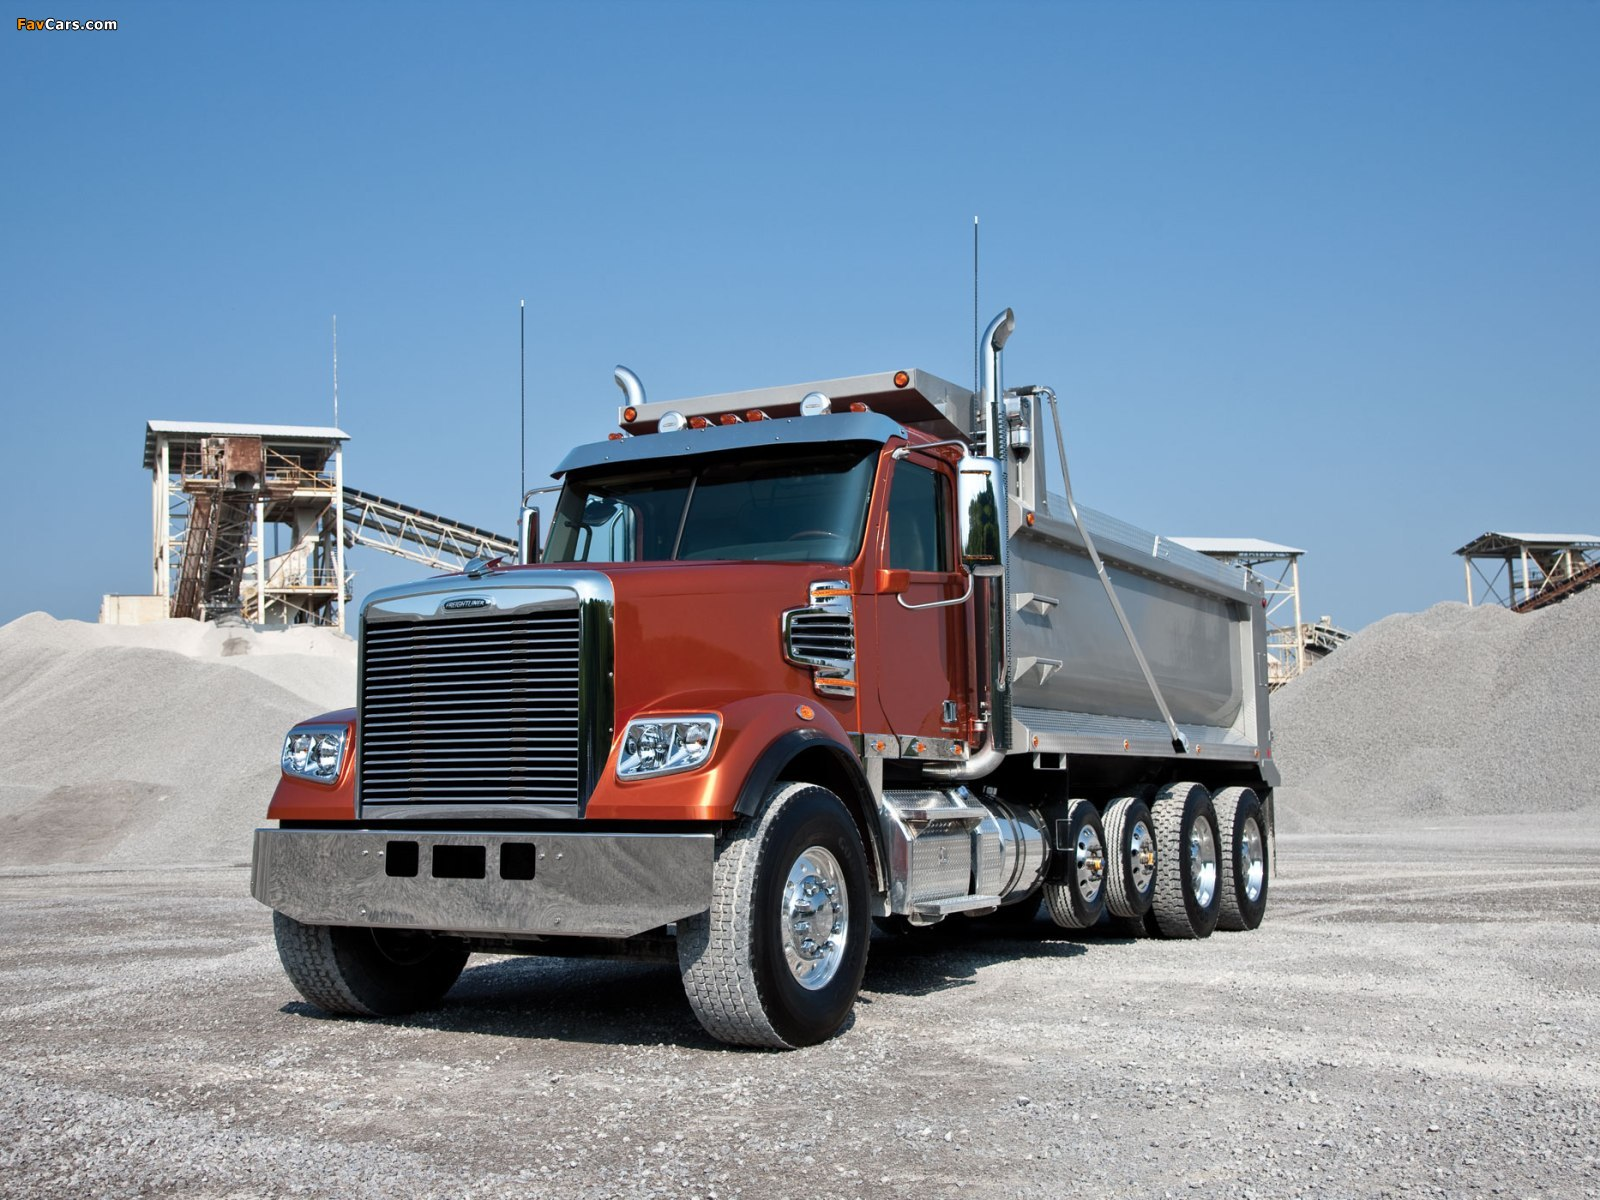 Freightliner coronado photo - 3